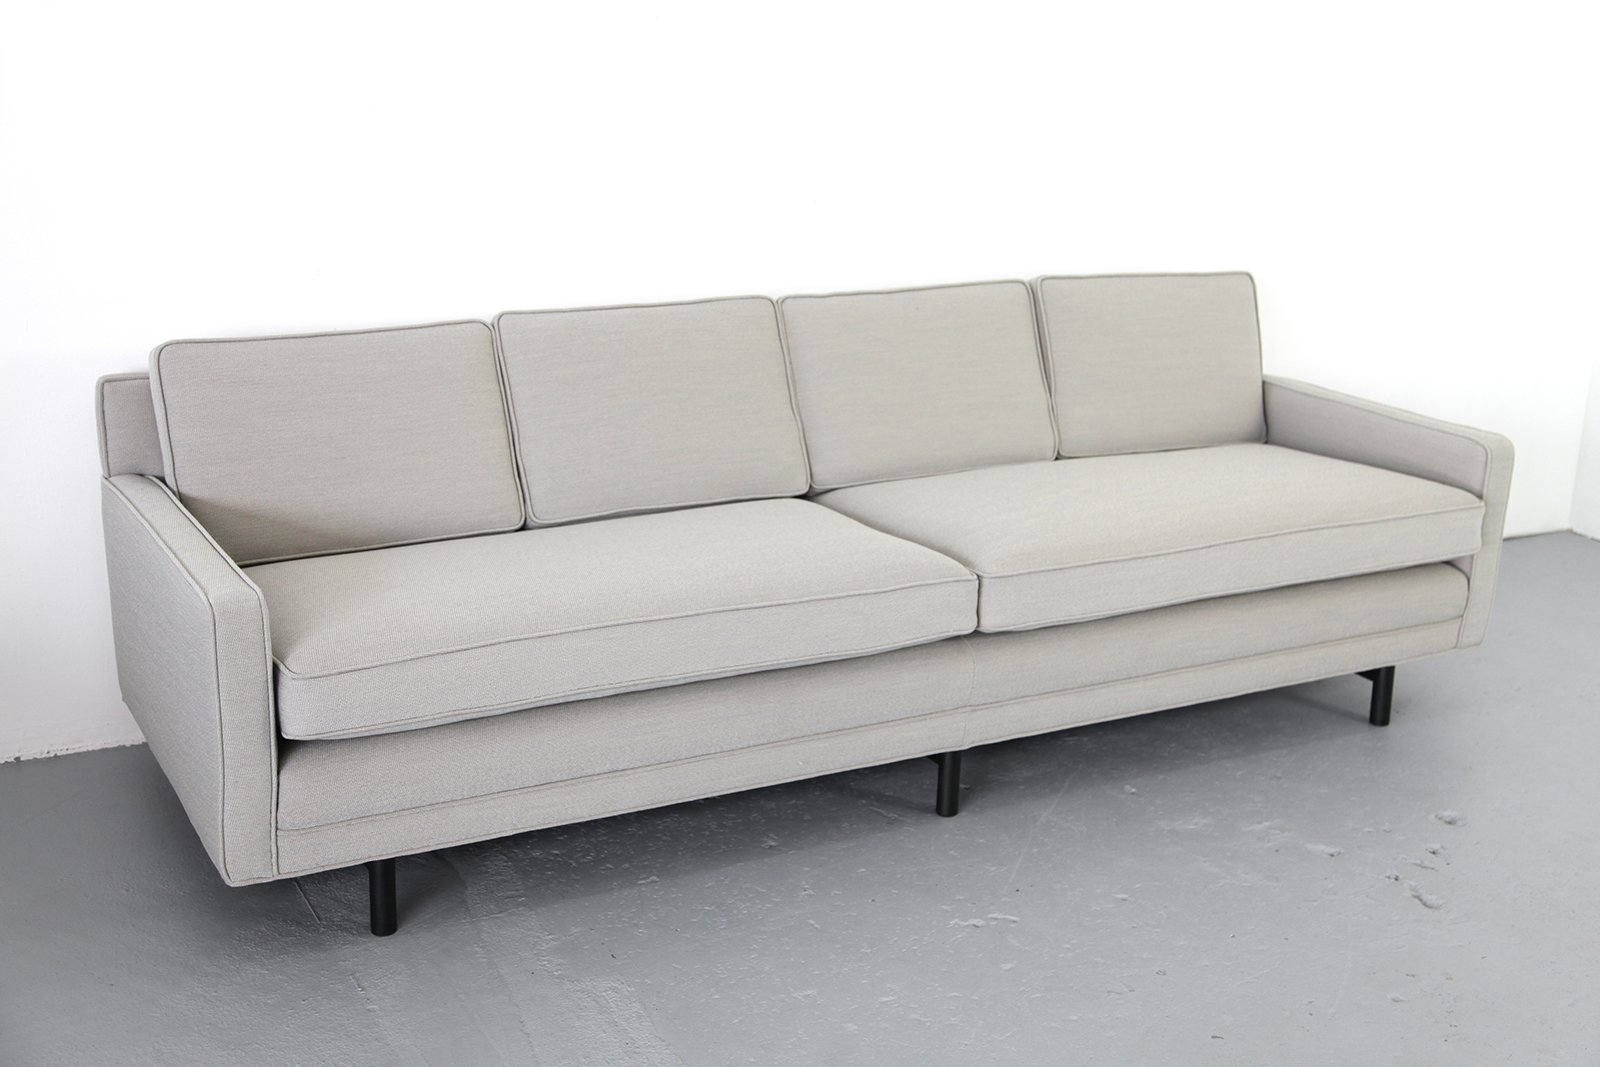 4 Seater Sofa by Paul McCobb for Directional for sale at